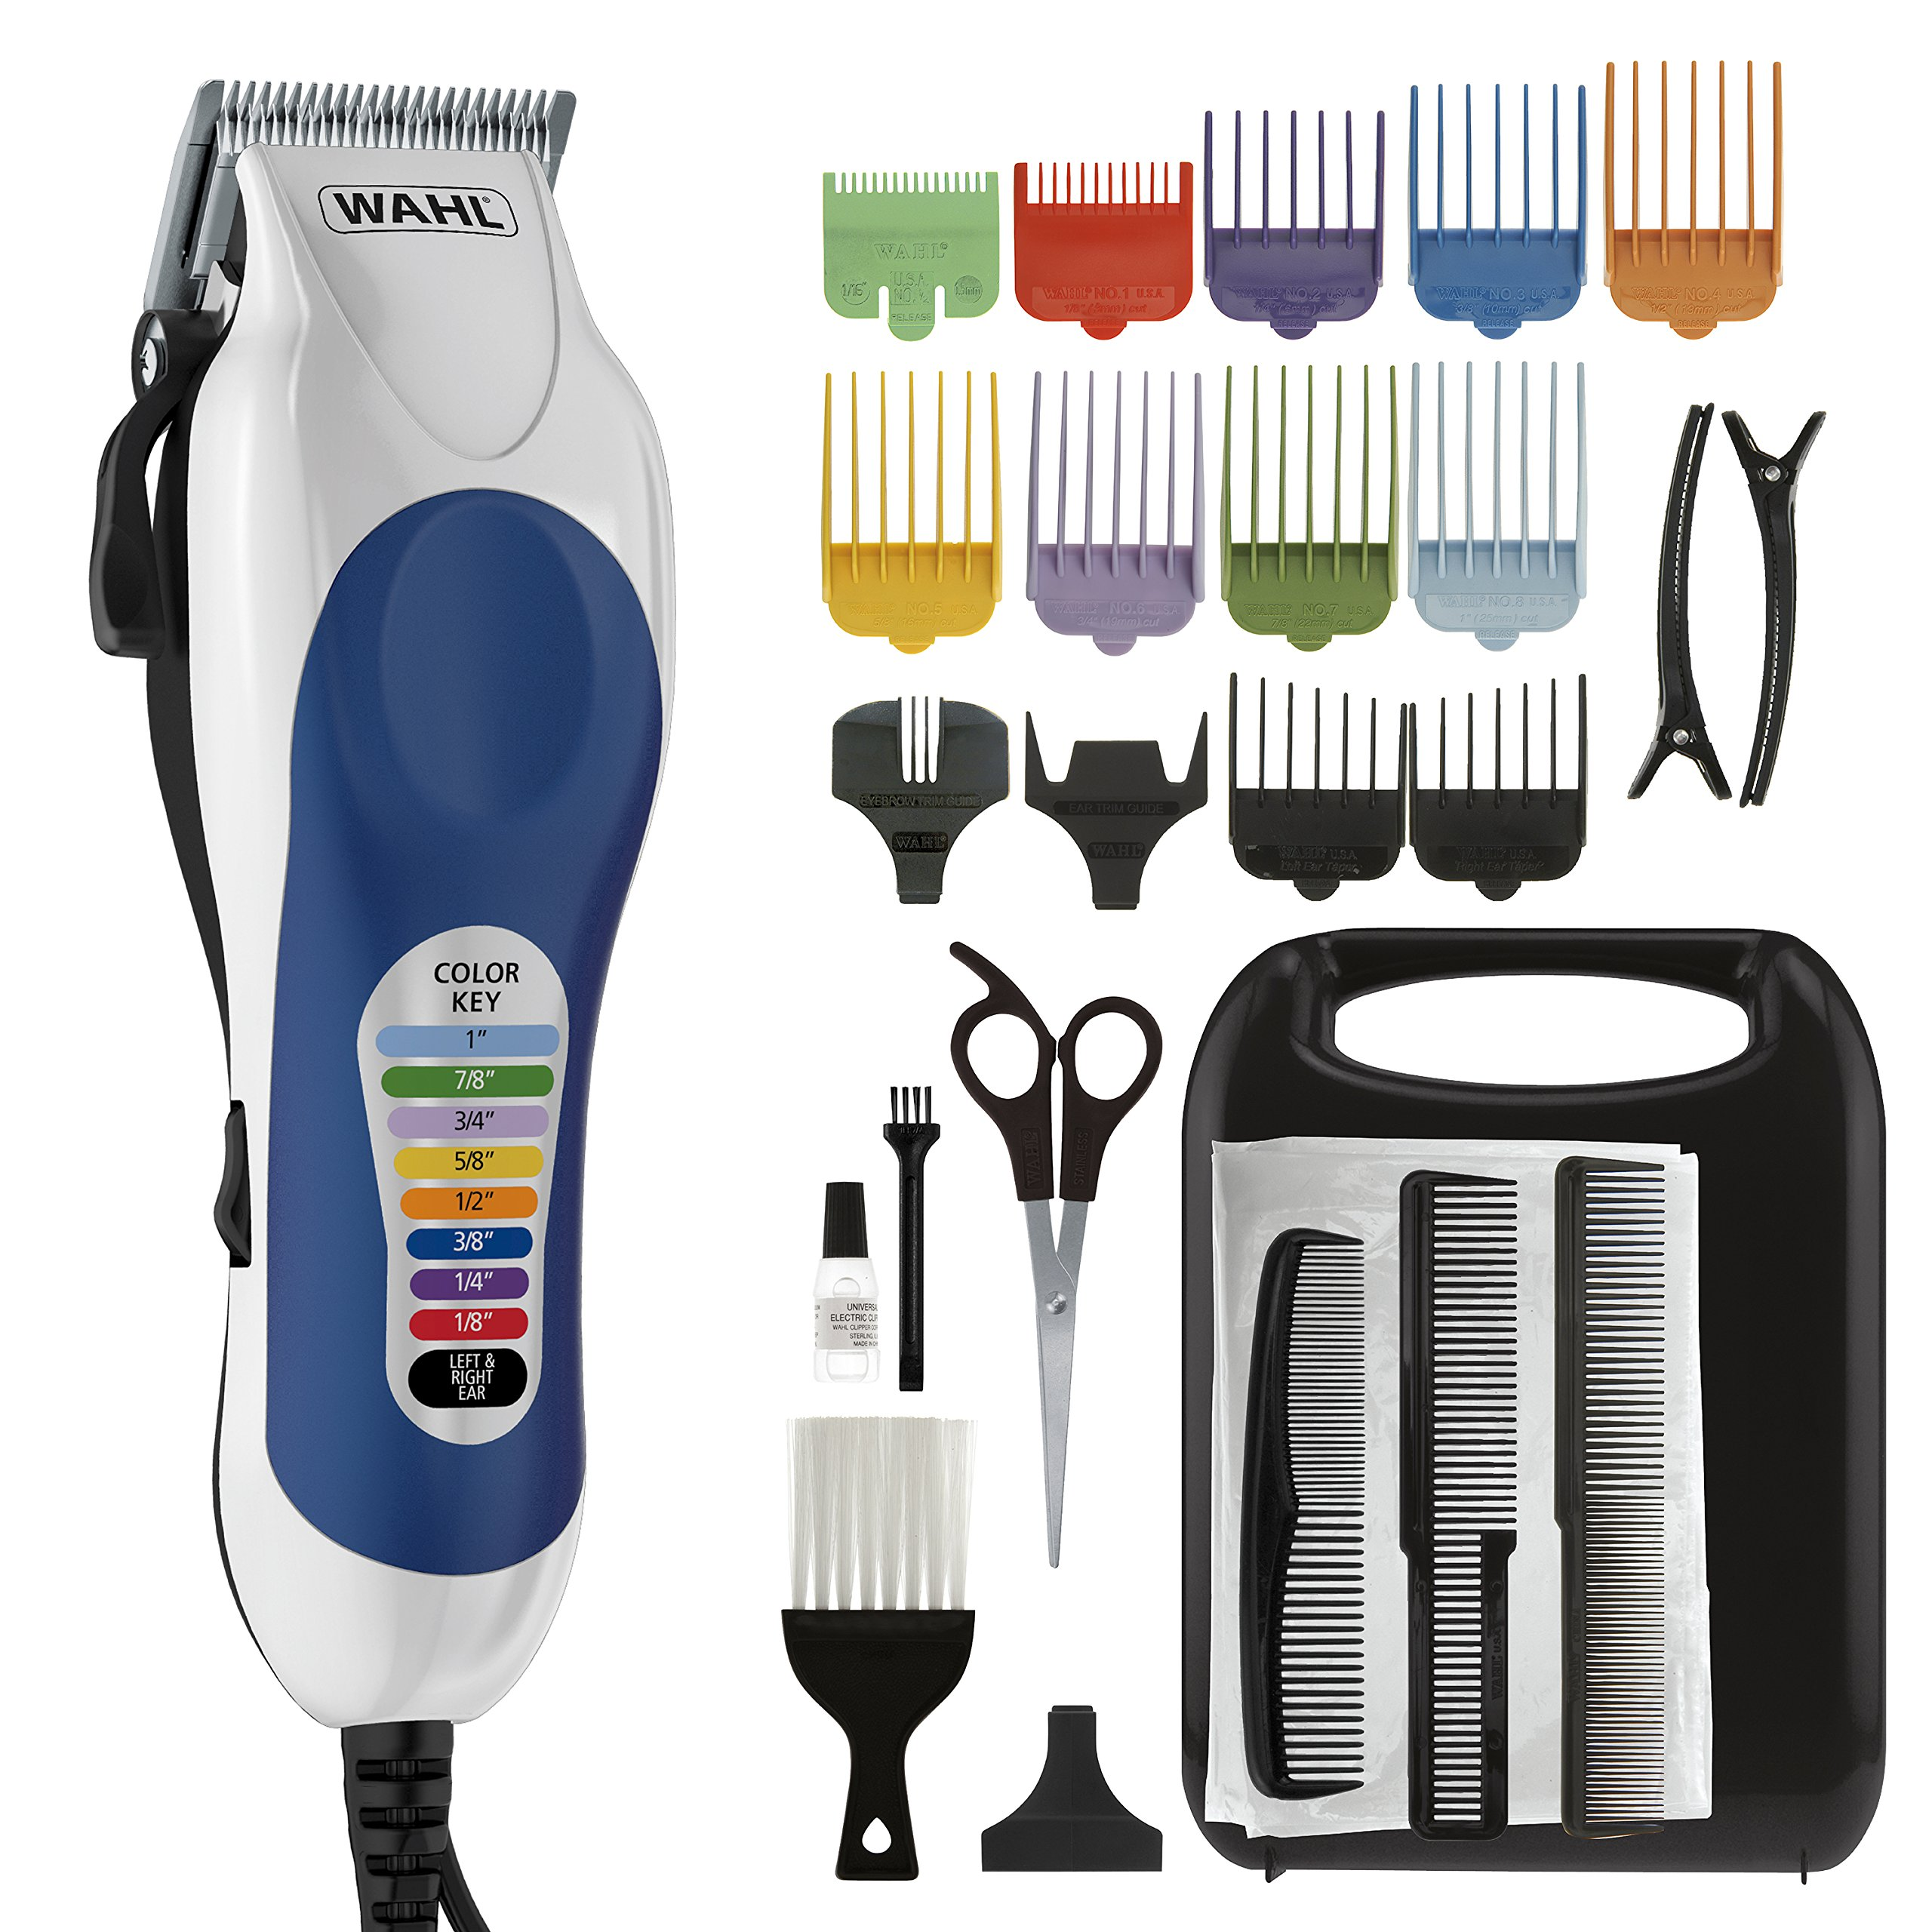 Wahl Color Pro Complete Hair Cutting Kit with Extended Accessories & Cape, Includes Color Coded Guide Combs and Color Coded Hair Length Key, Styling Shears, and Combs for Home Styling,79300-1001 by WAHL